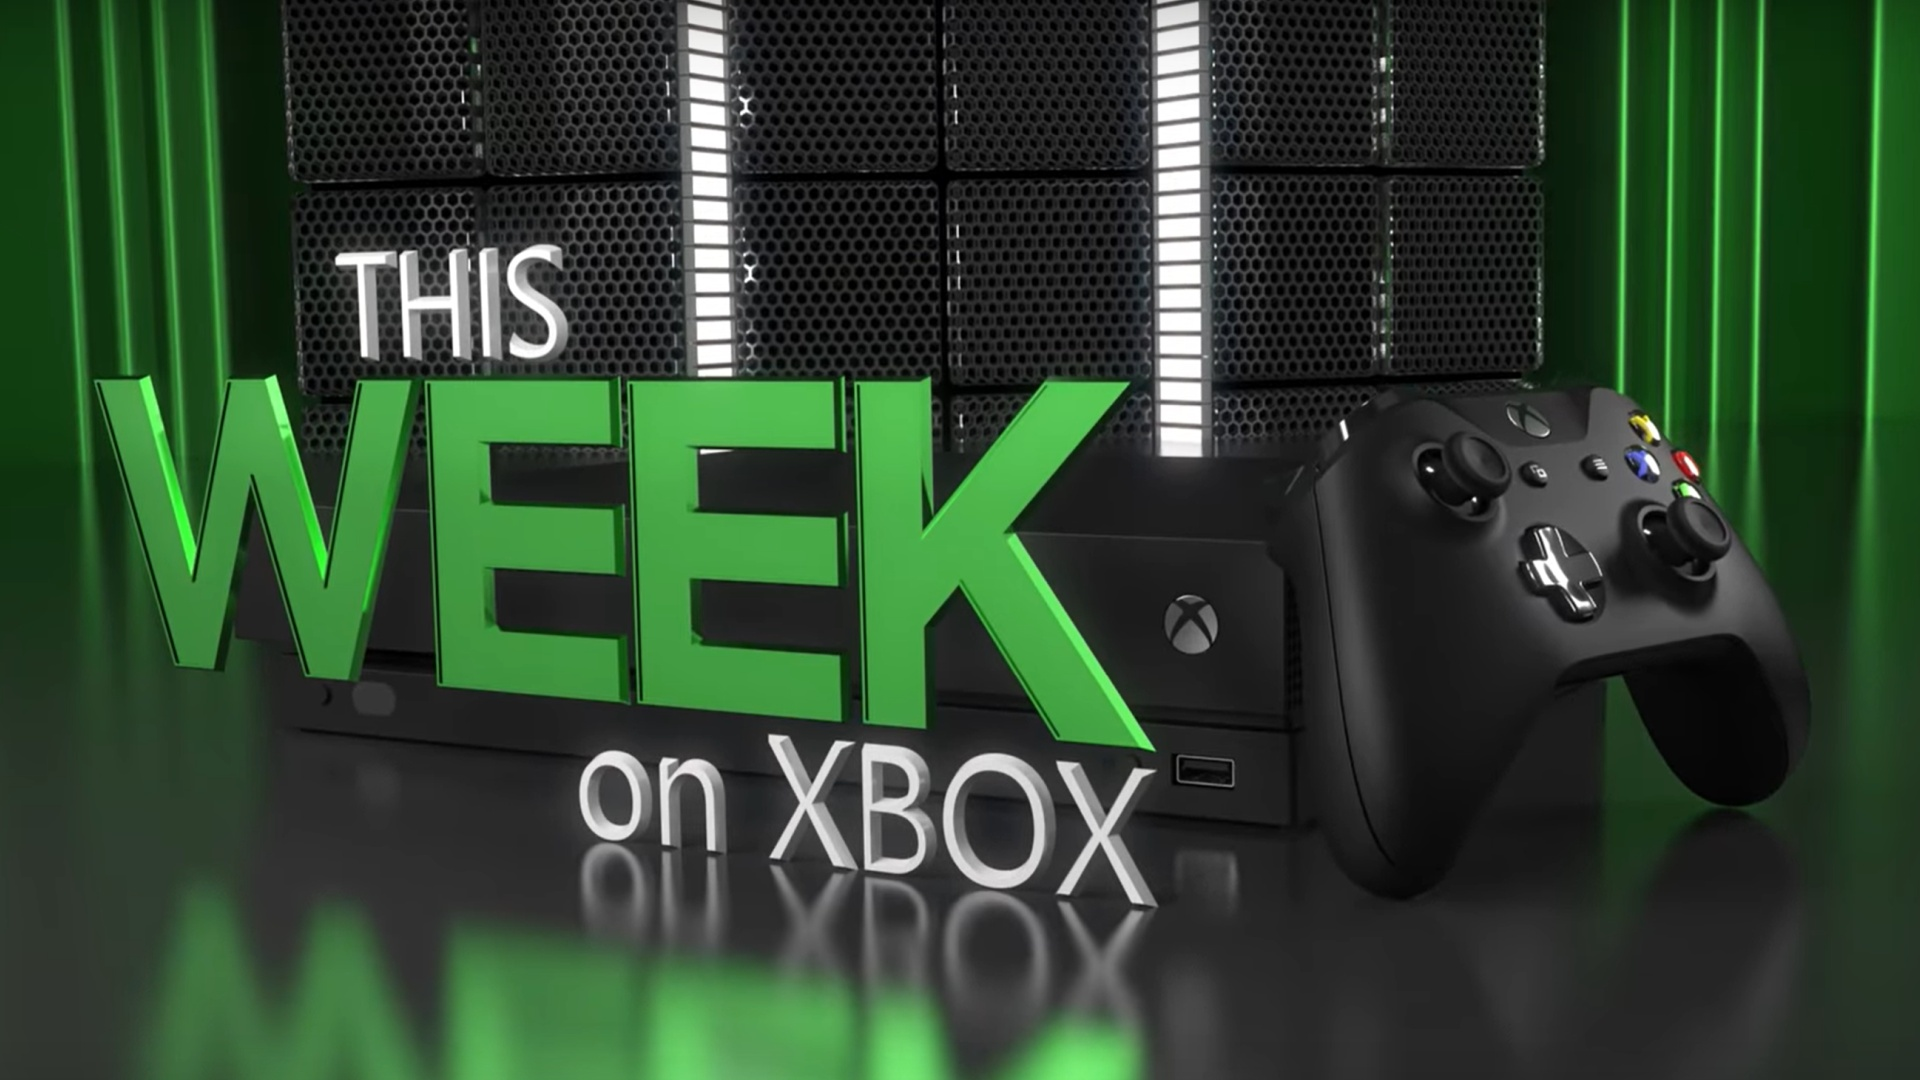 Video For This Week on Xbox: January 17, 2020